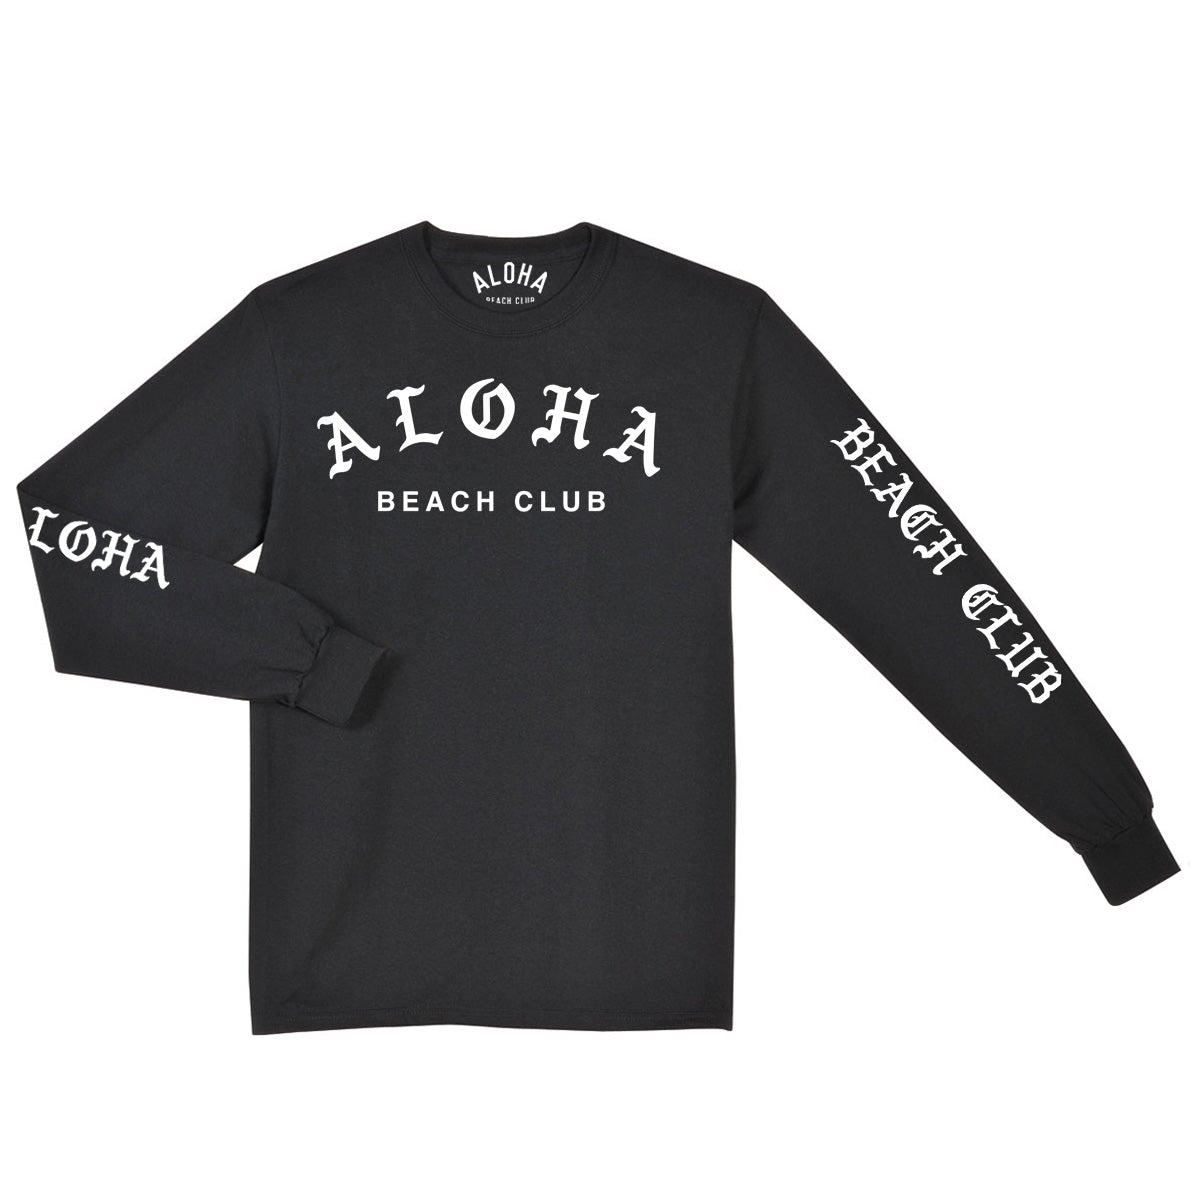 Aloha Beach Club - Venice Long Sleeve Shirt Black - Aloha Beach Club